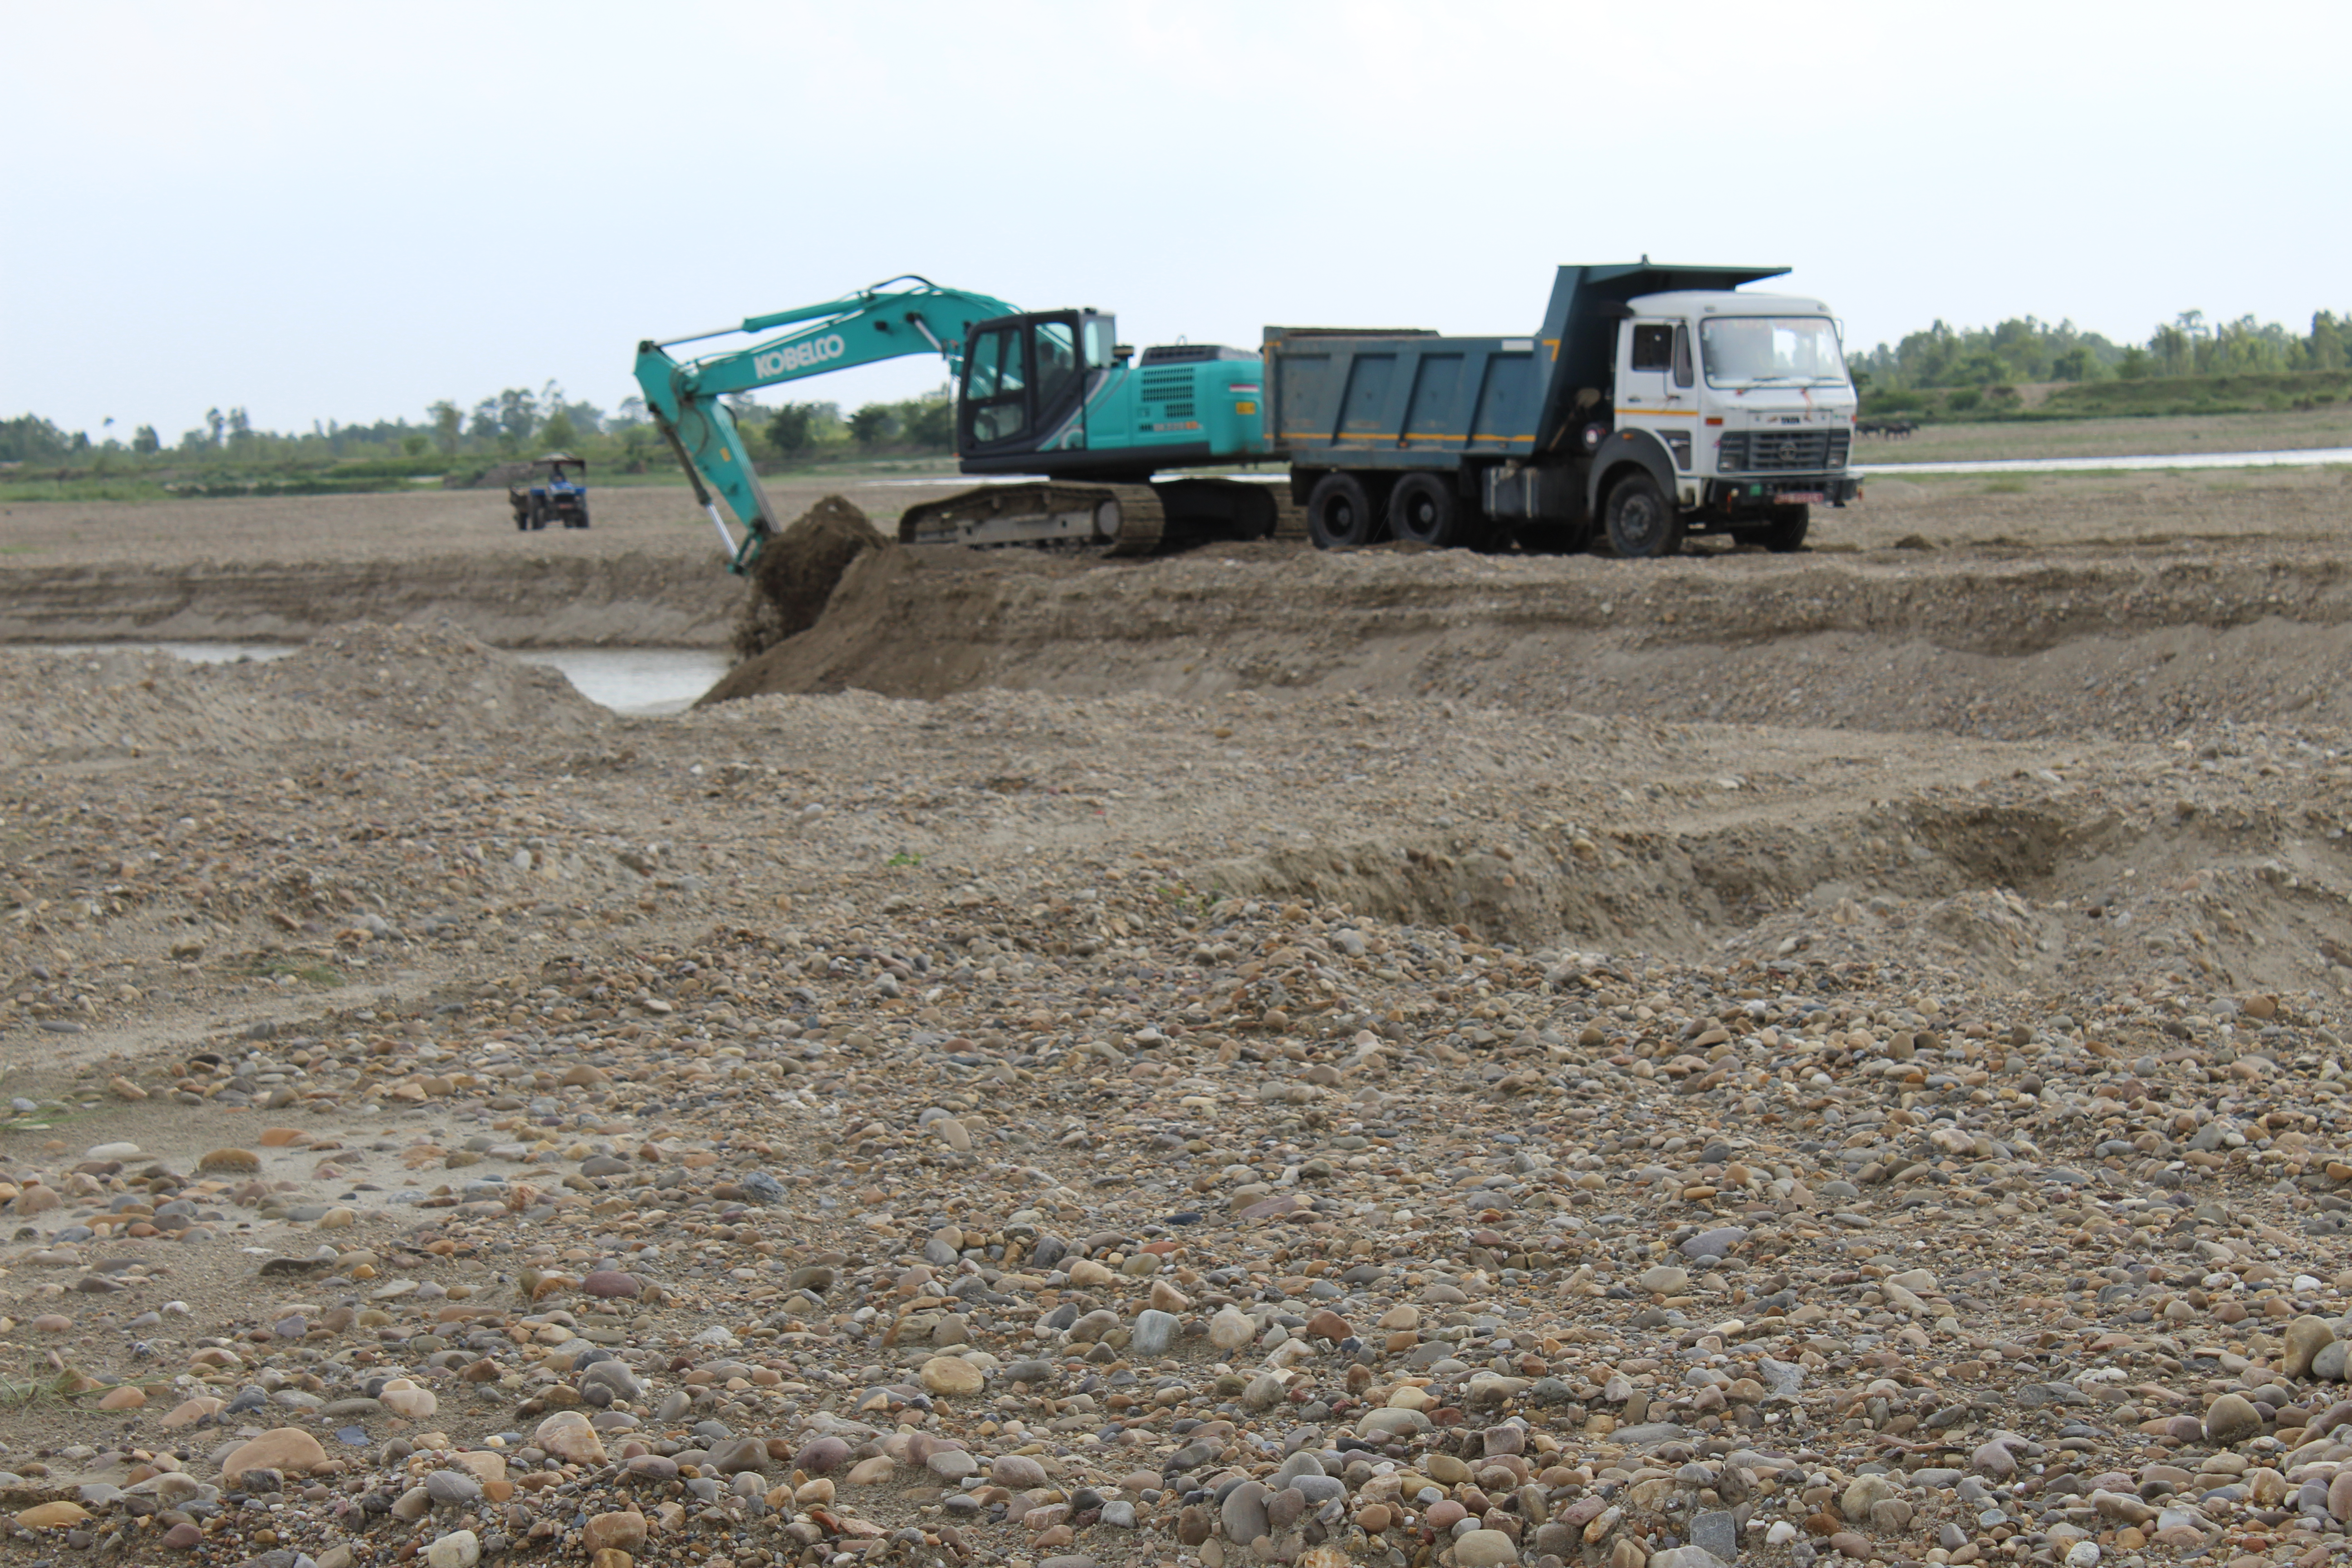 An excavator is being used to load sand onto a truck on the banks of Kamala river, in Siraha district, on Monday, June 01, 2020. Photo: Ashish BK/THT